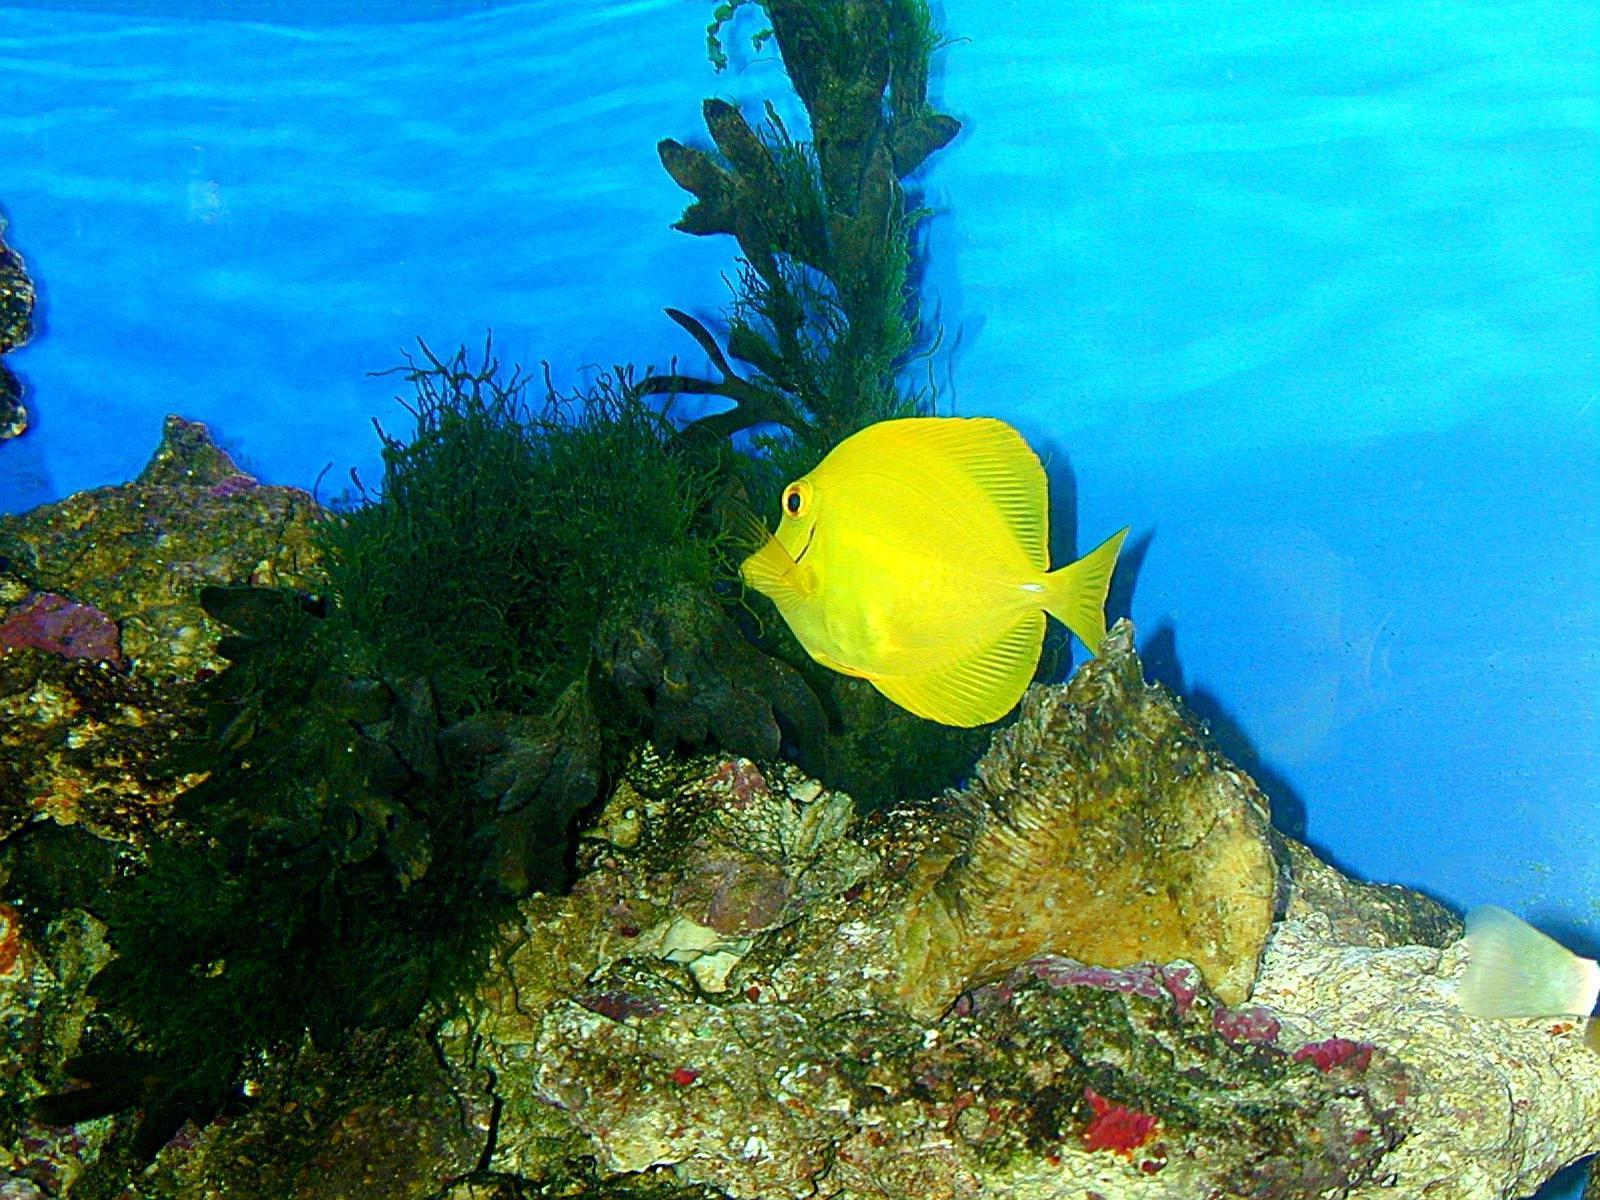 Tropical fish wallpaper fish wallpaper 5413001 fanpop for Tropical aquarium fish